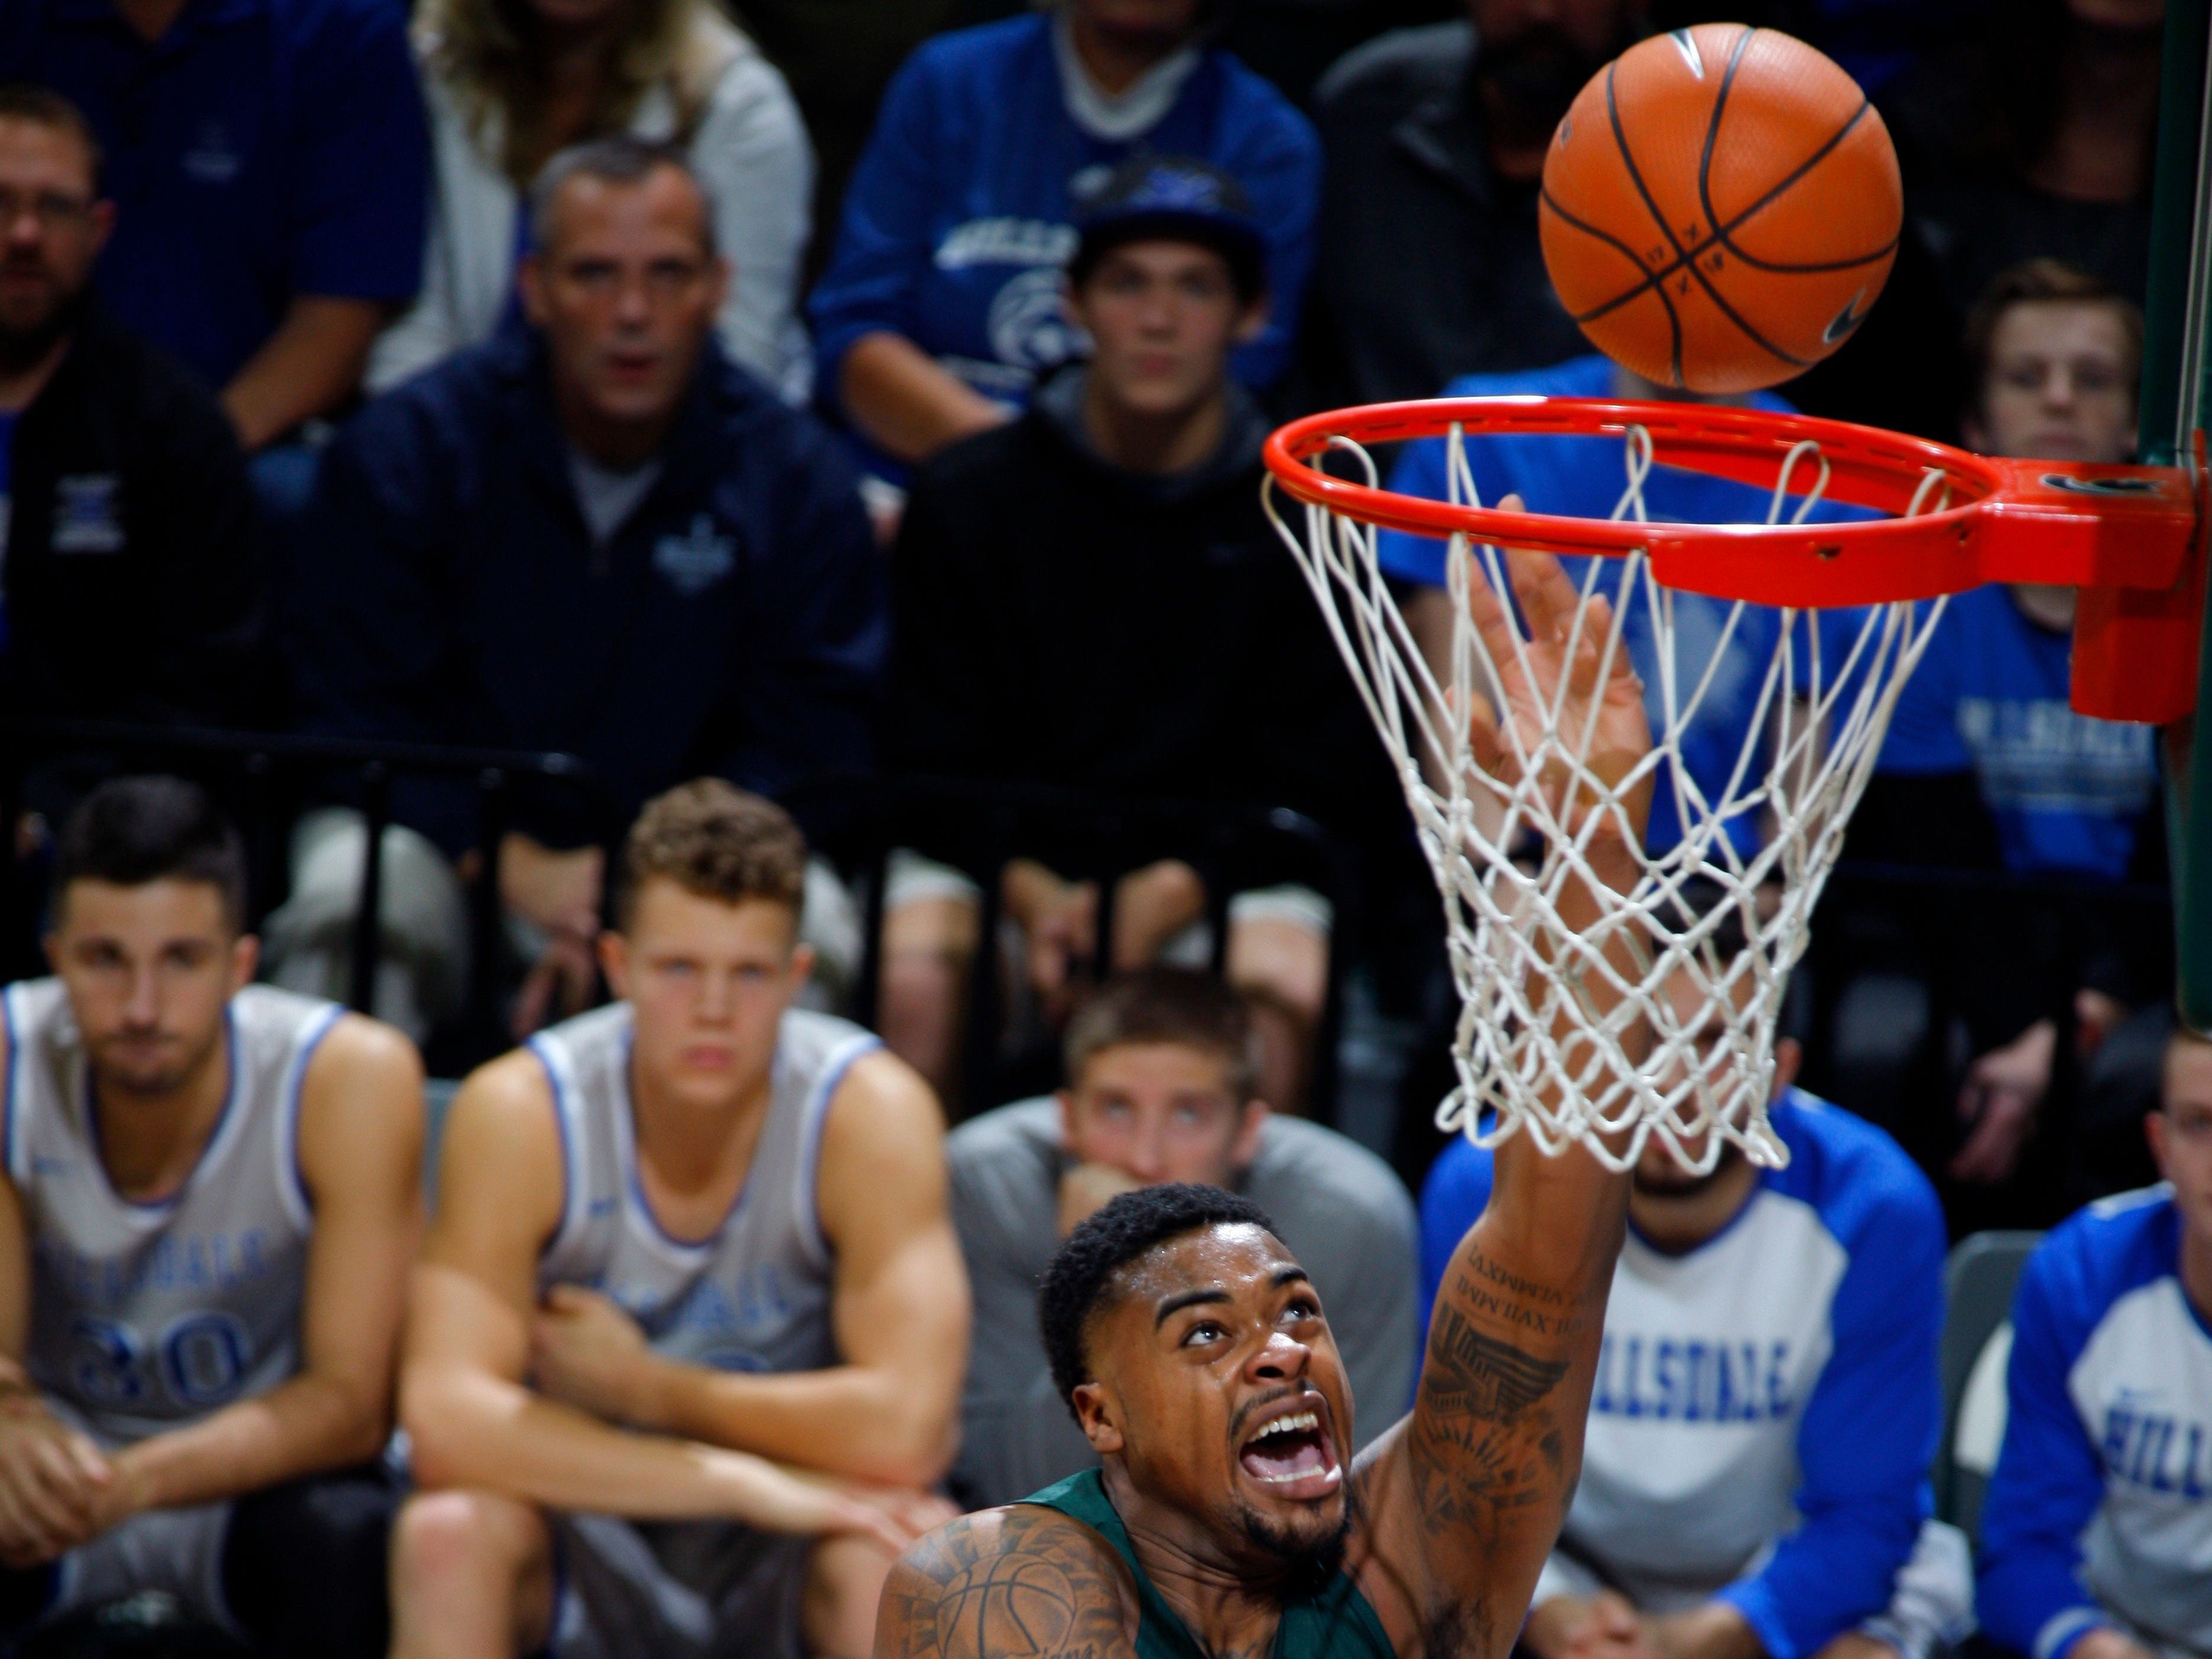 Michigan State?s Nick Ward shoots against Hillsdale?s Gordon Behr (33) during the first half Friday in East Lansing.   Al Goldis/AP Michigan State's Nick Ward, rear, shoots against Hillsdale's Gordon Behr (33) during the first half of an NCAA college basketball exhibition game, Friday, Nov. 3, 2017, in East Lansing, Mich.